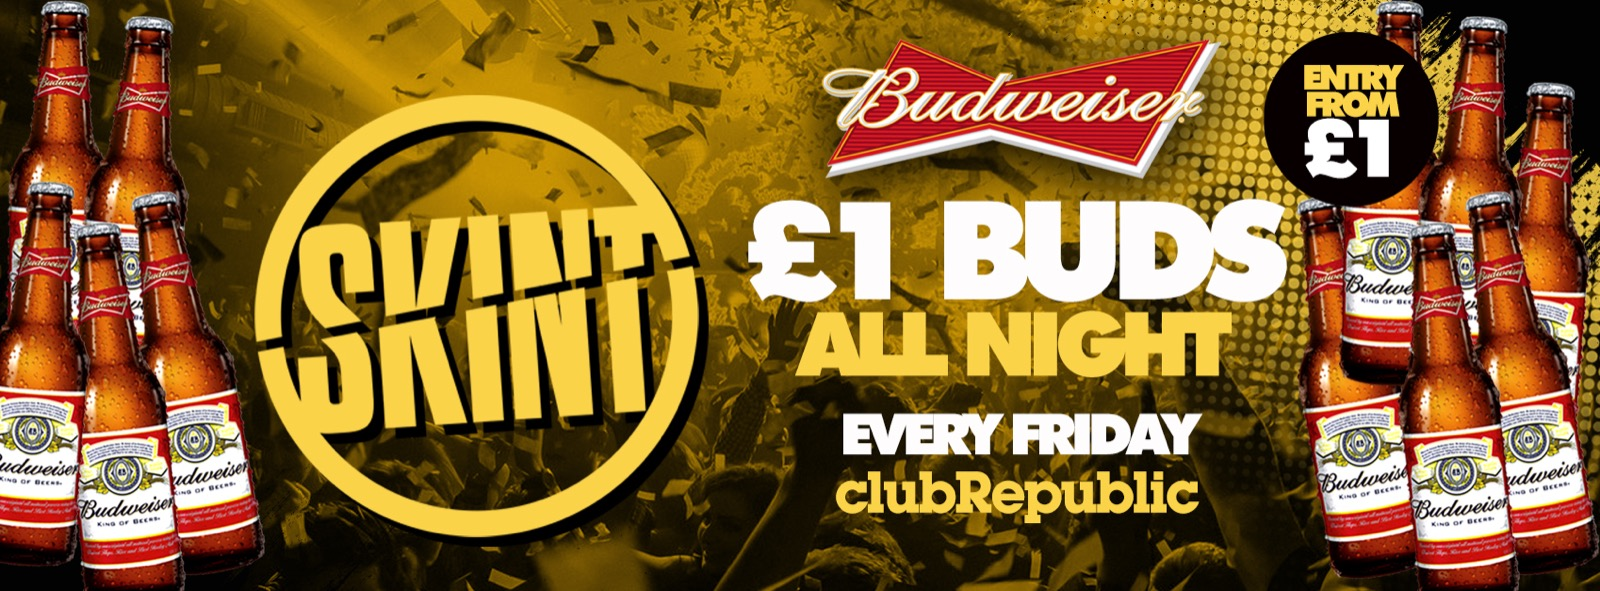 ★ Skint Fridays ★ £1 BUDS ALL NIGHT! ★ Club Republic ★ £1 Tickets On Sale!